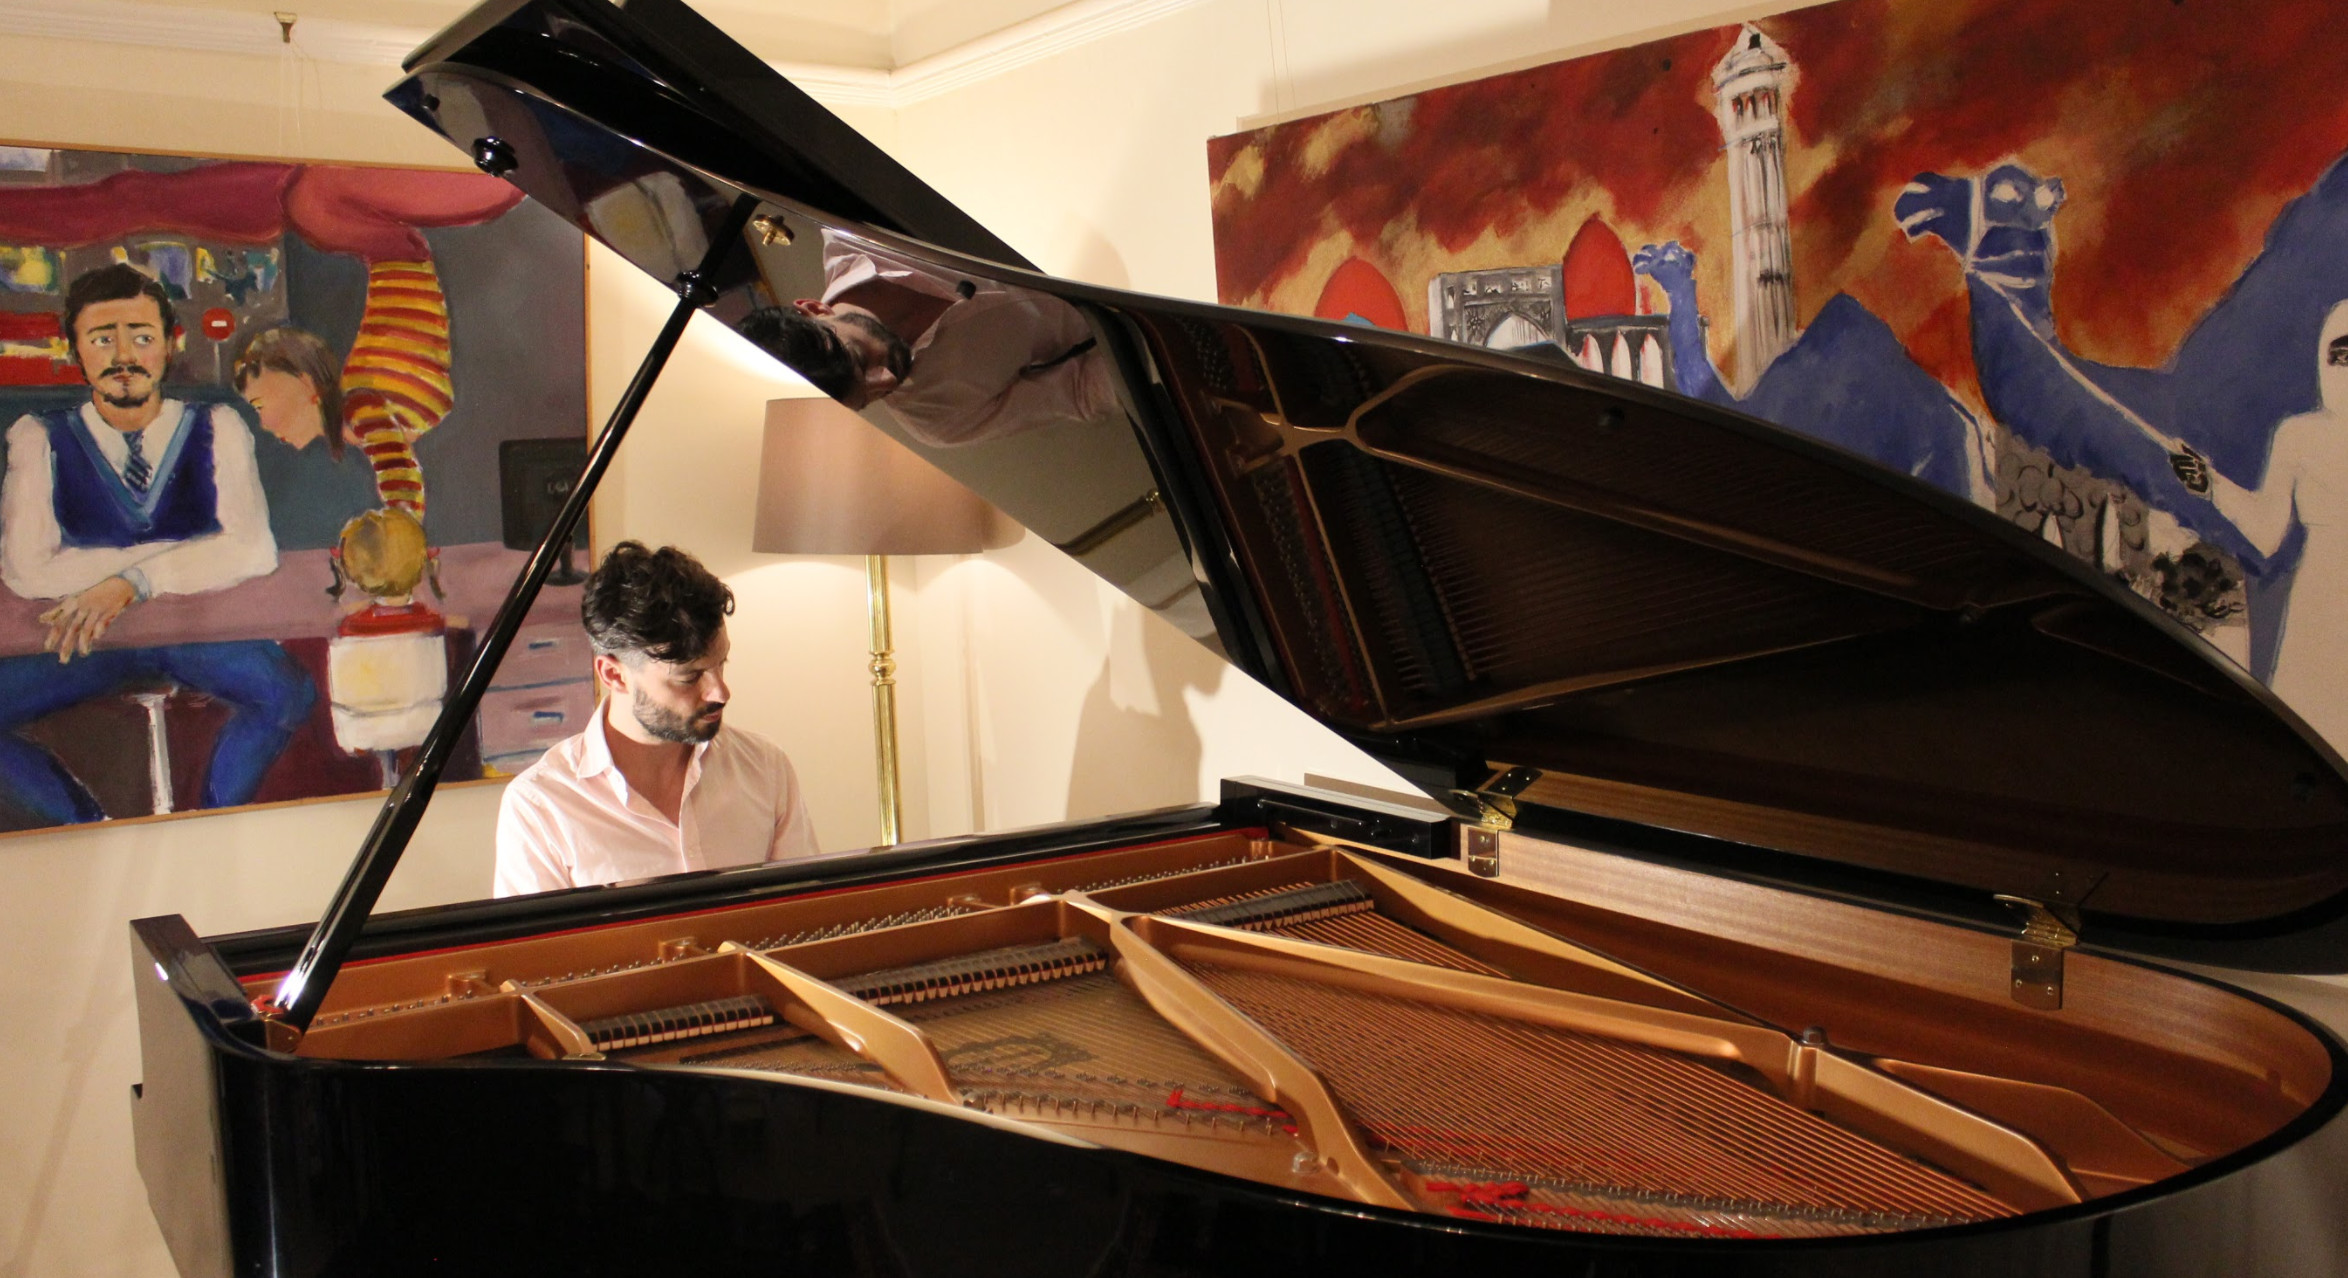 Piano lessons London for Beginners at WKMT by Piano lessons London by WKMT - music in London